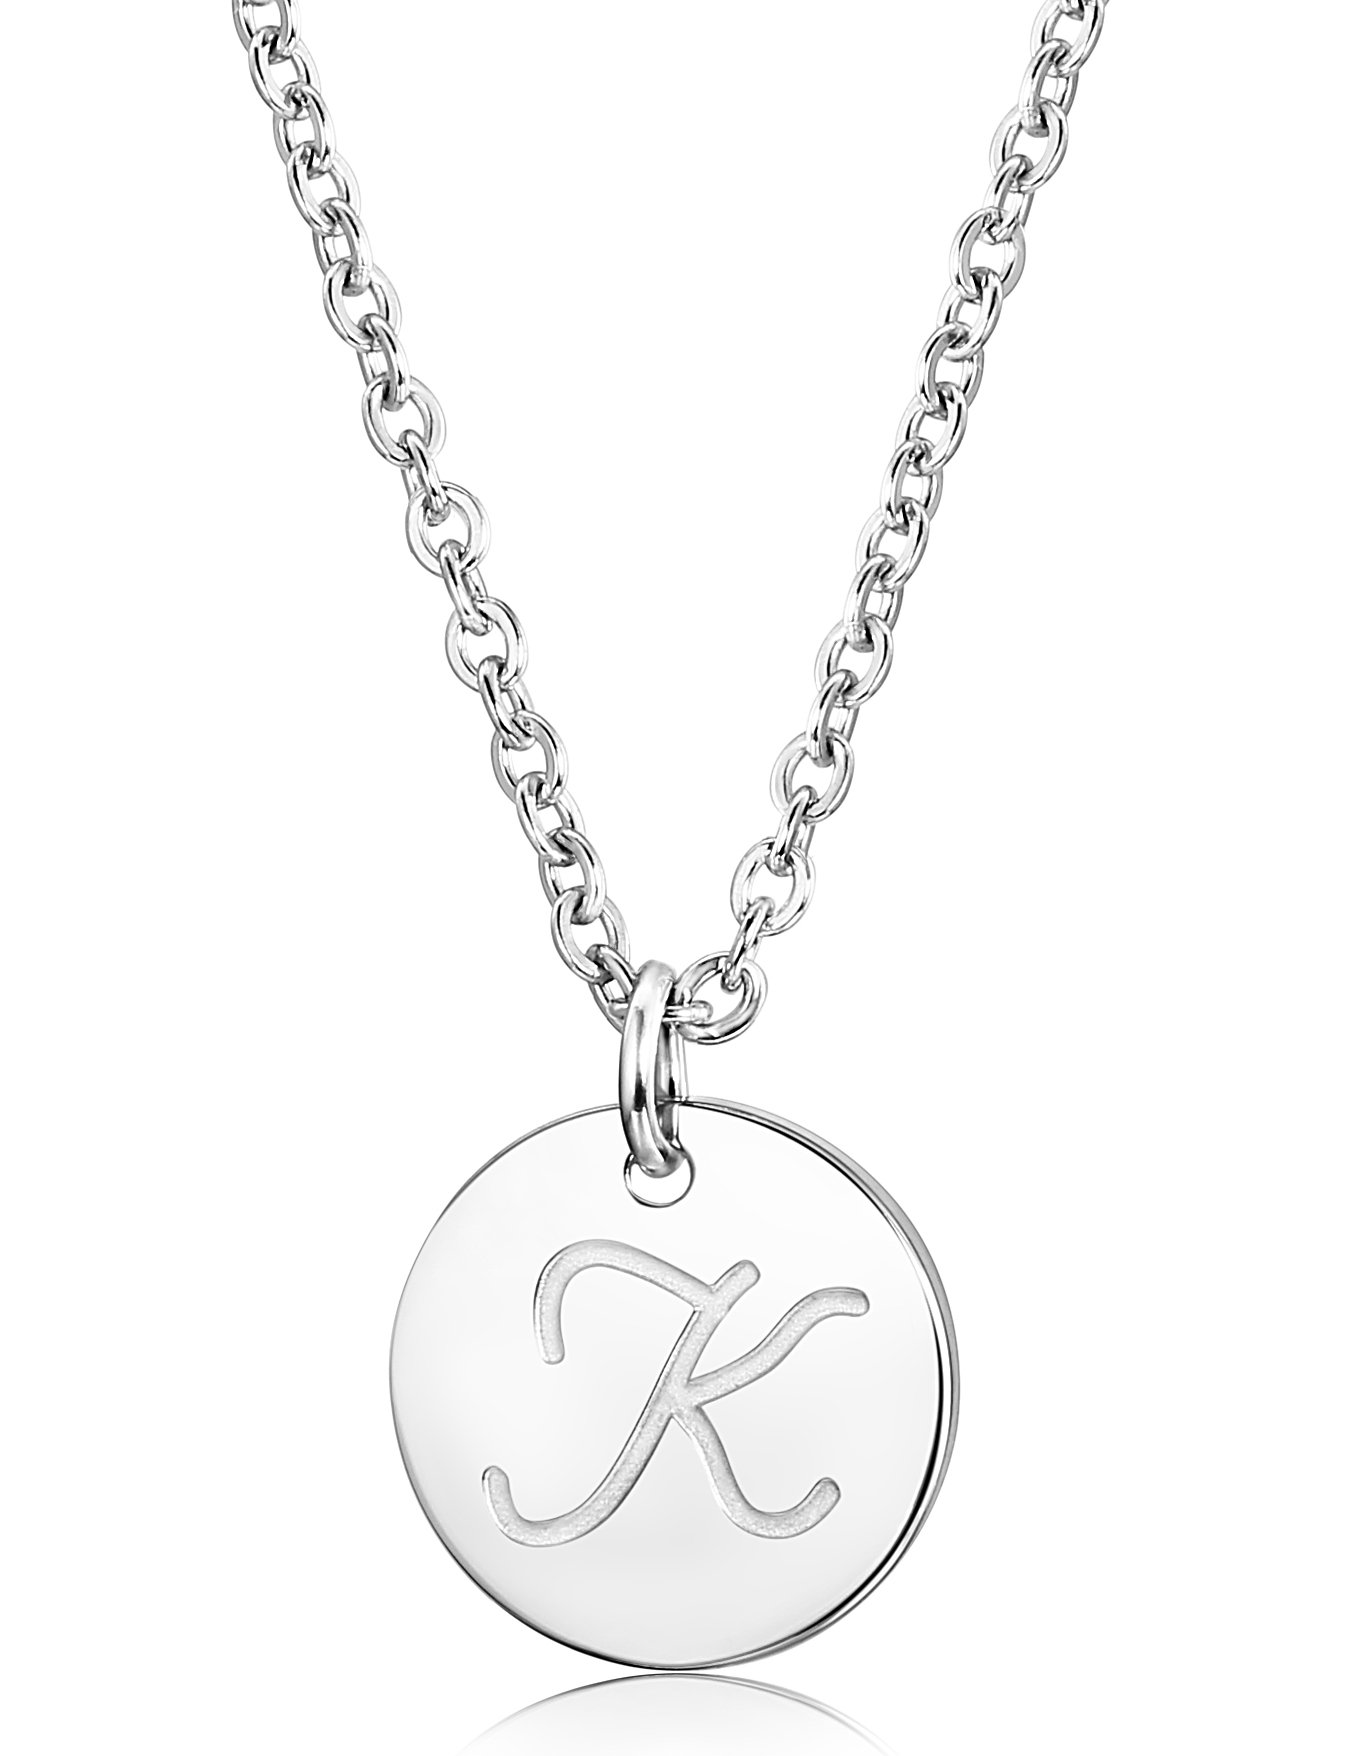 c3b09e1f8 FUNRUN JEWELRY Stainless Steel Initial Letters Pendant Necklace for Women  Men (Letter K)